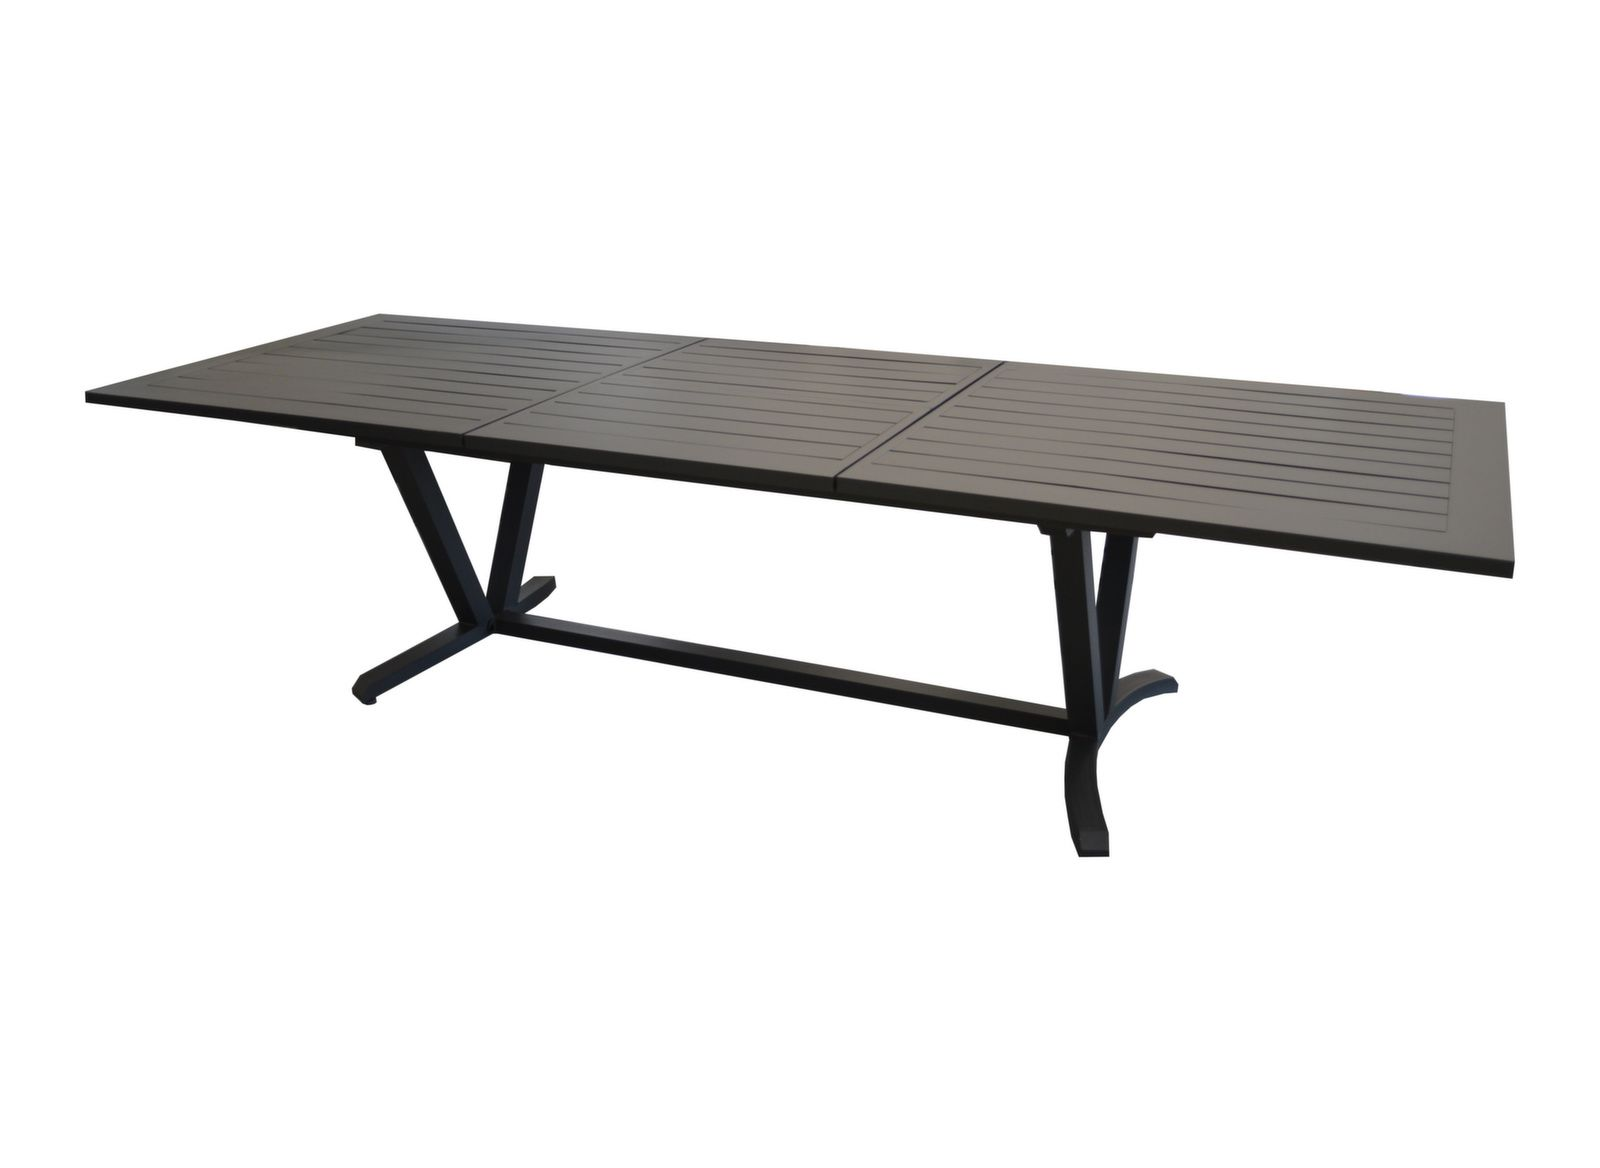 Table Aube 220/300 cm (New)